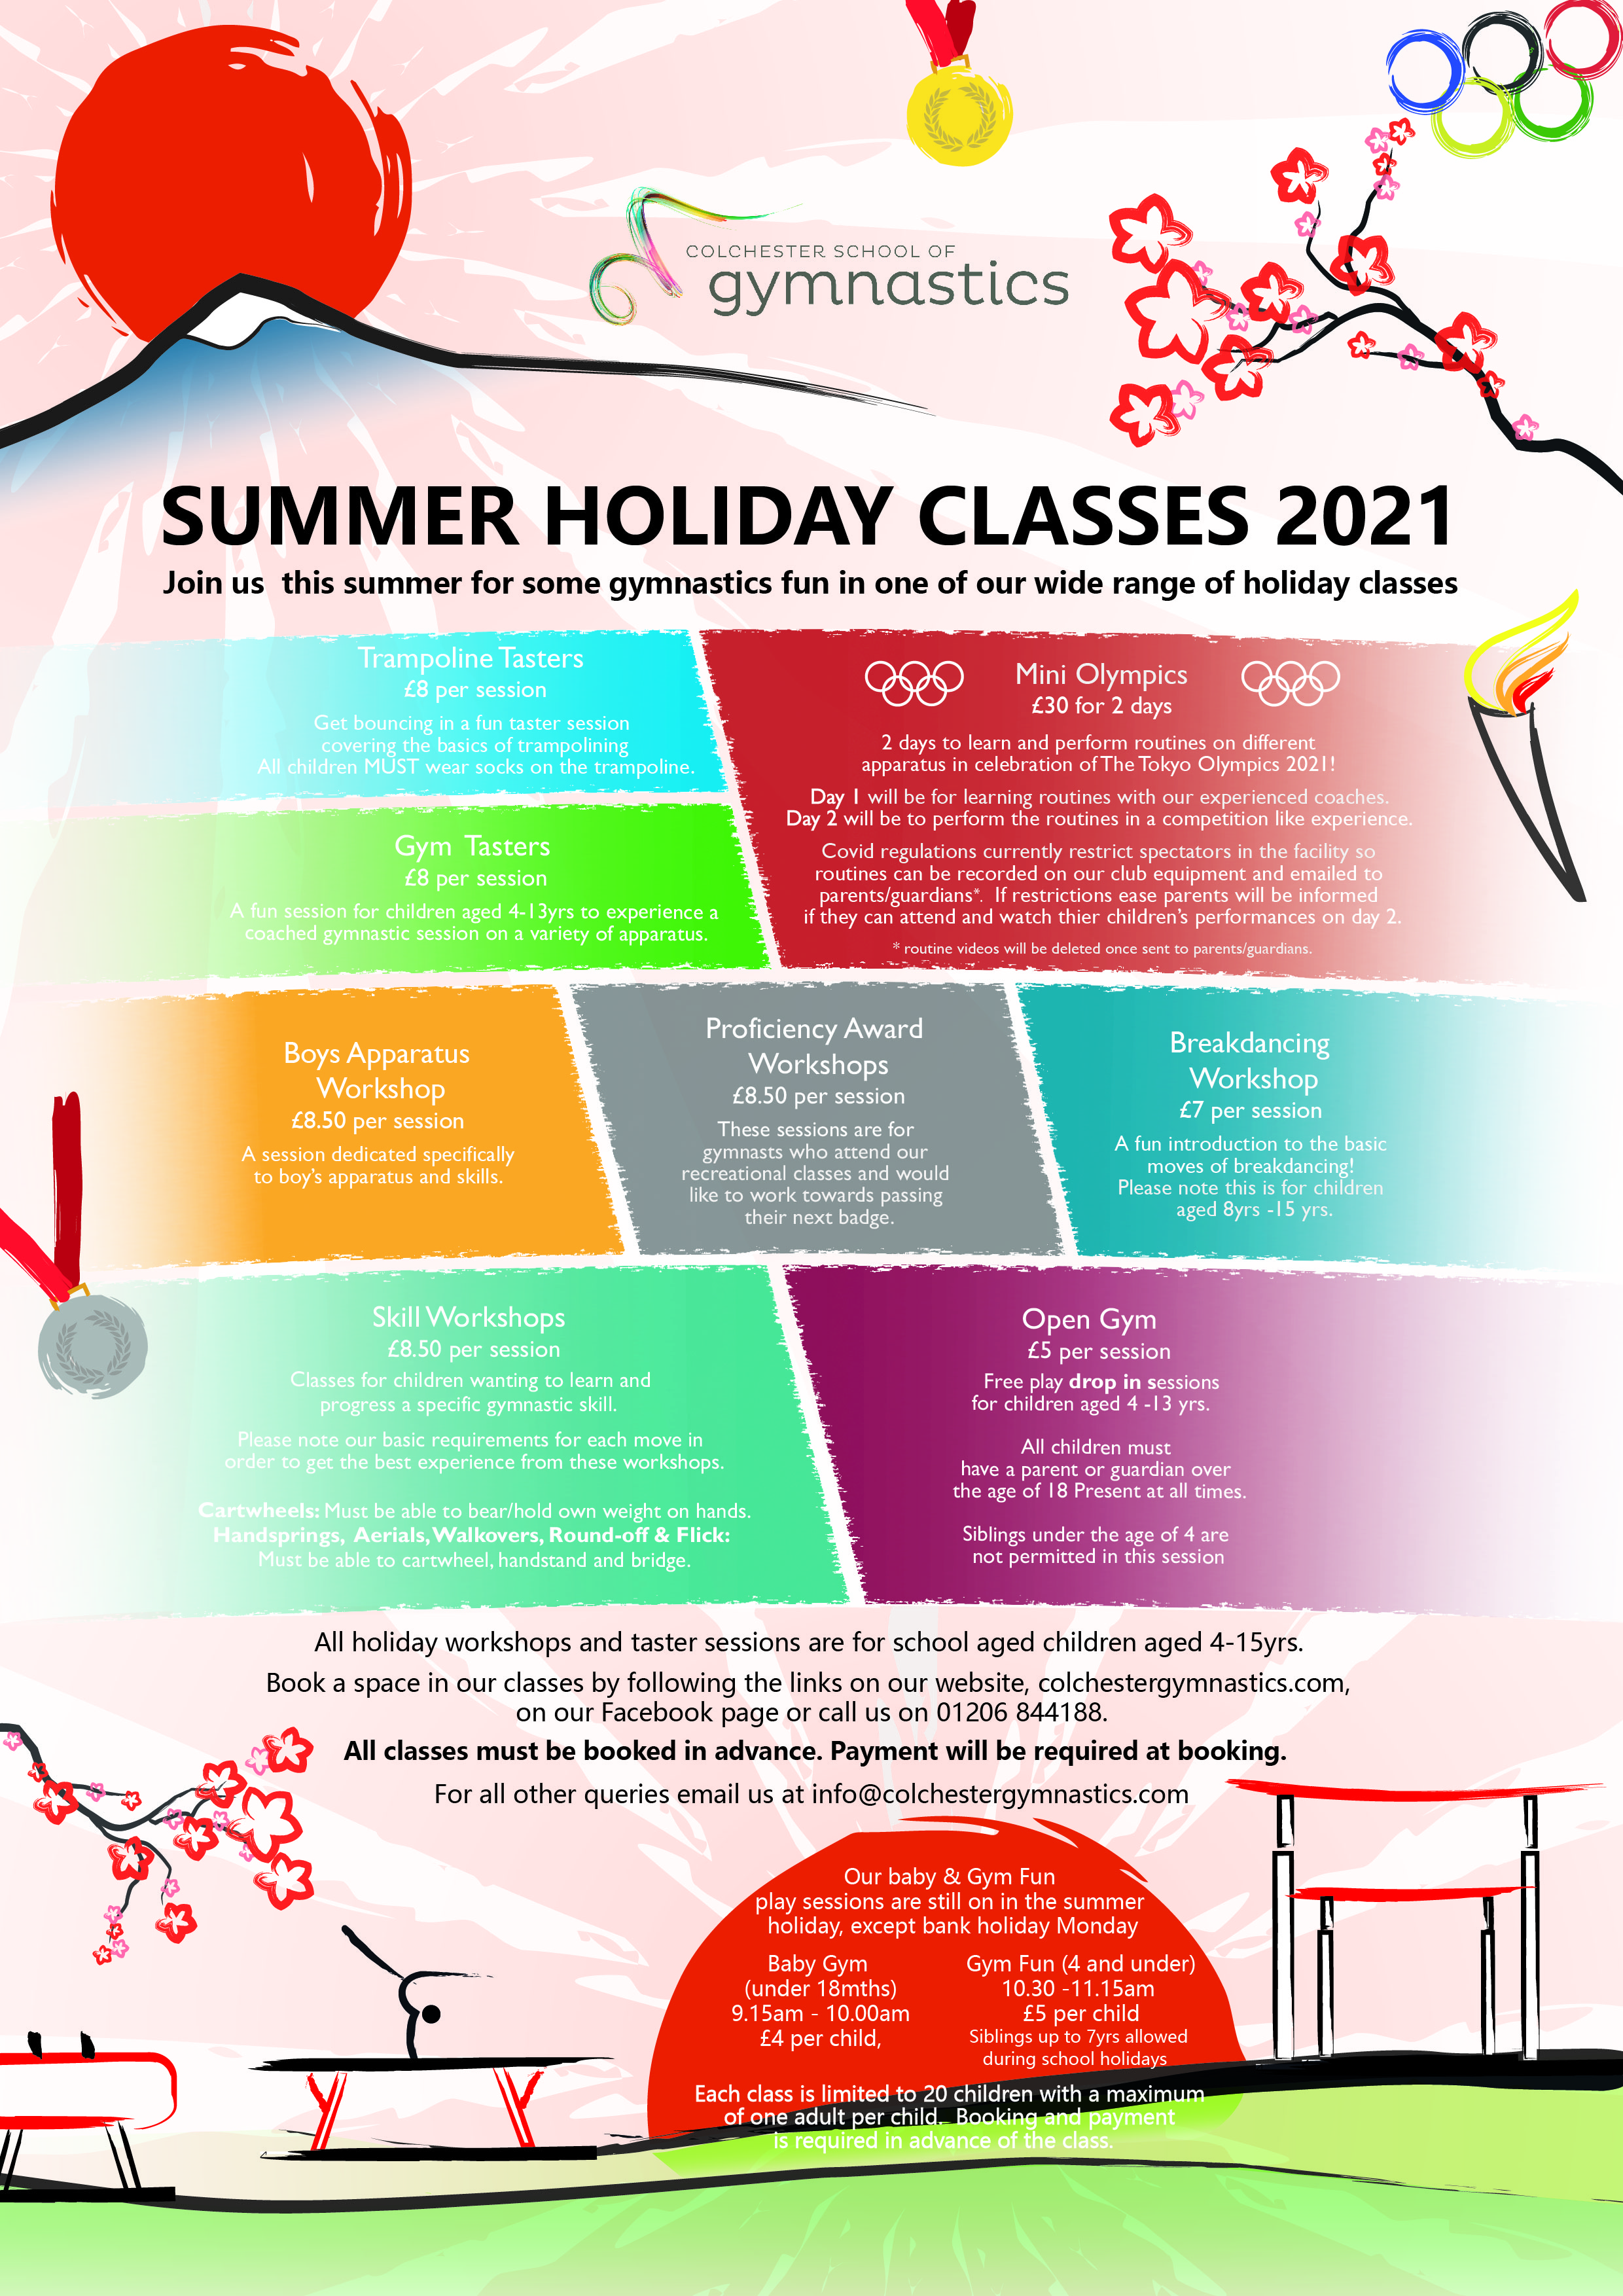 CSG Summer Holiday Poster 2021 - FINAL-01